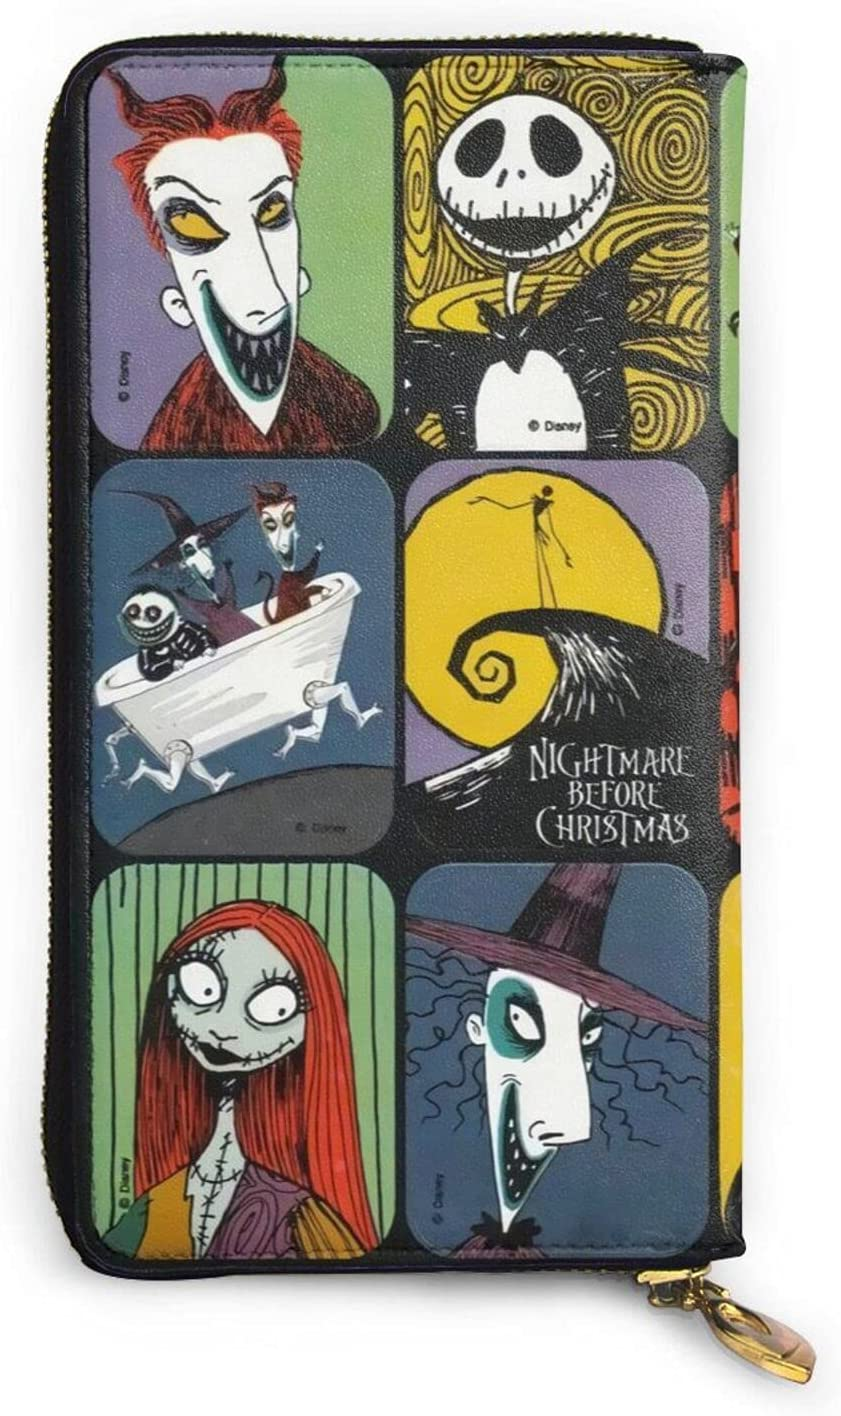 The Nightmare Before Christmas Animation Coin Purse Zipper Wallet Cartoon Classic Popular Leather Craft Card Case Advanced Waterproof Wallet Luxury Fashion Wallet Suitable for Girls, Women, Men